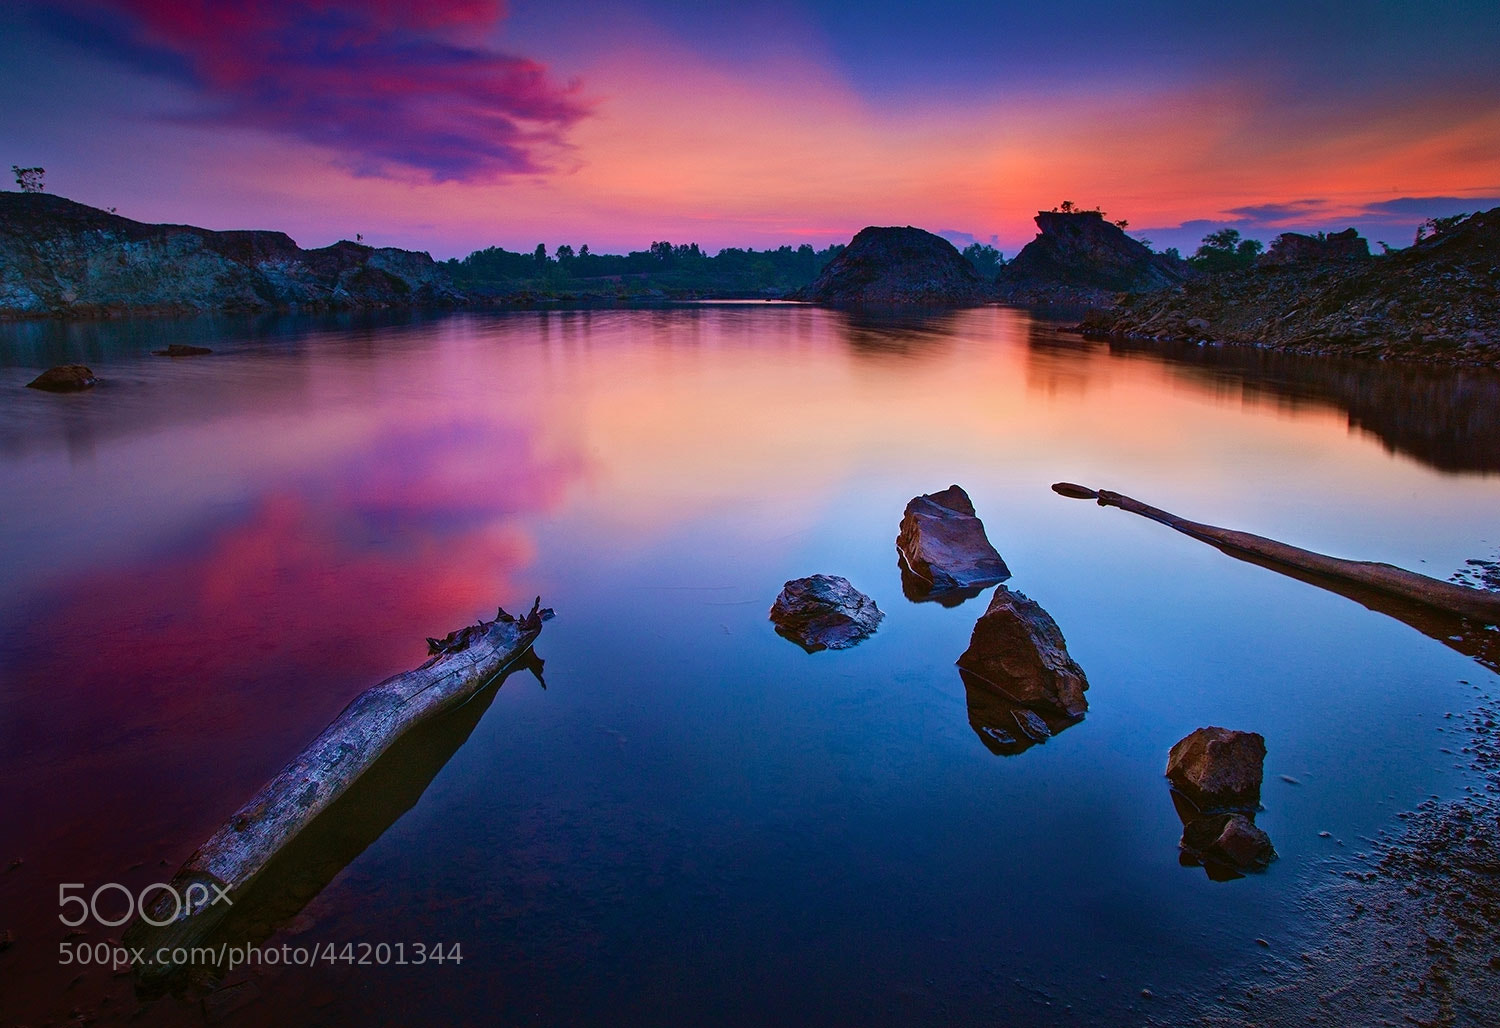 Photograph Untitled by Suhaimi Hassan on 500px